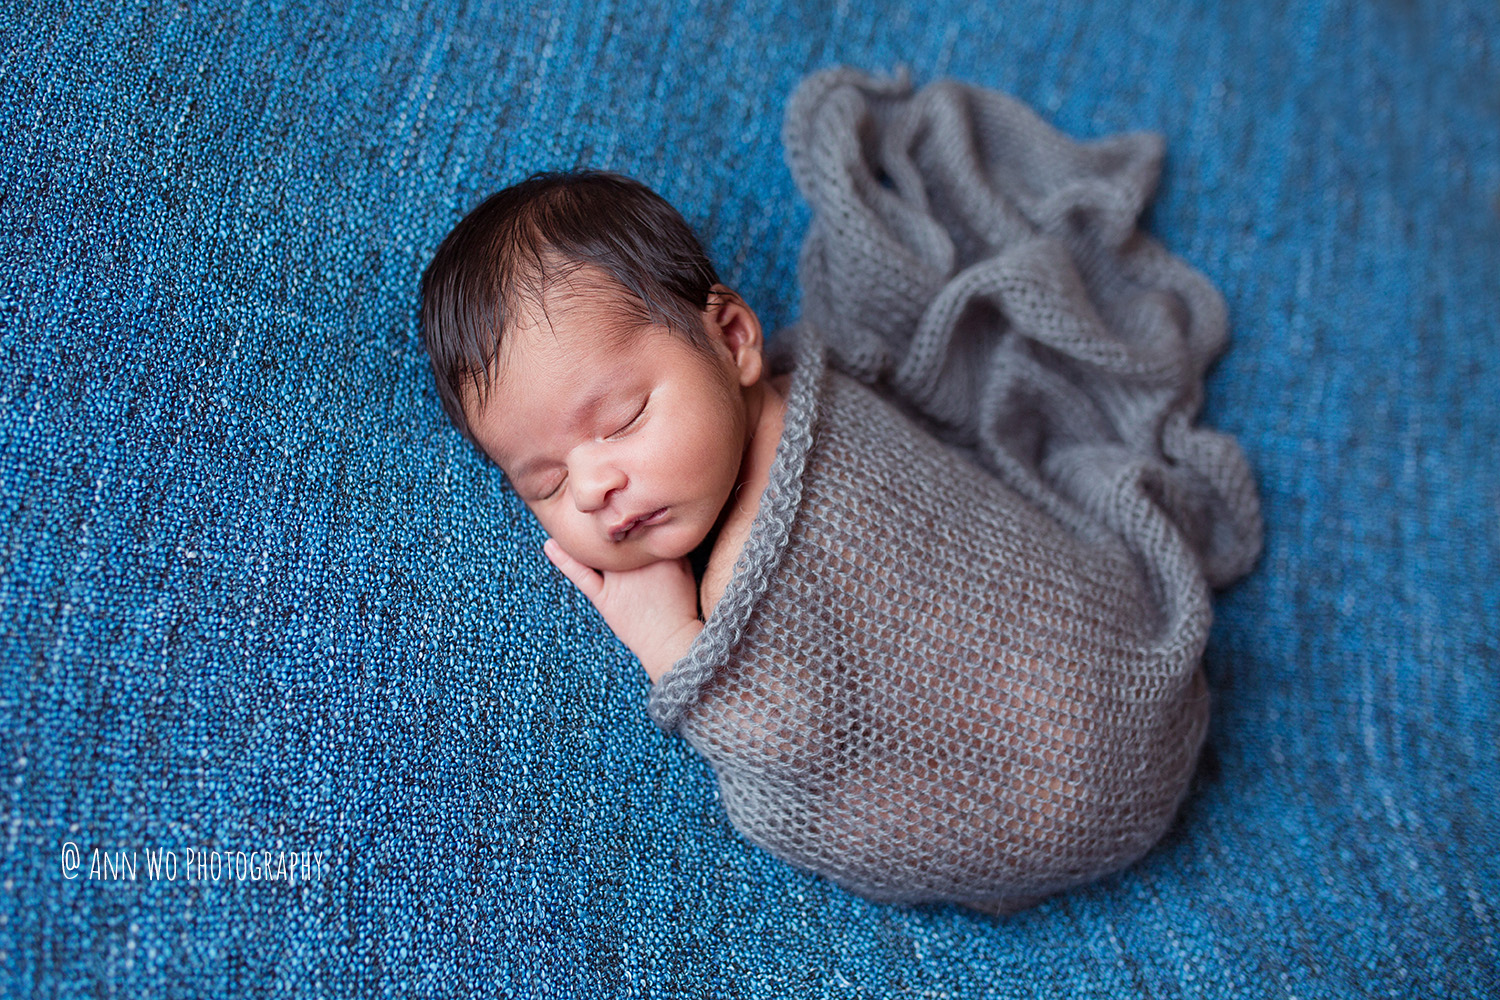 005-newborn-photography-session-at-home-ann-wo-london-05.JPG